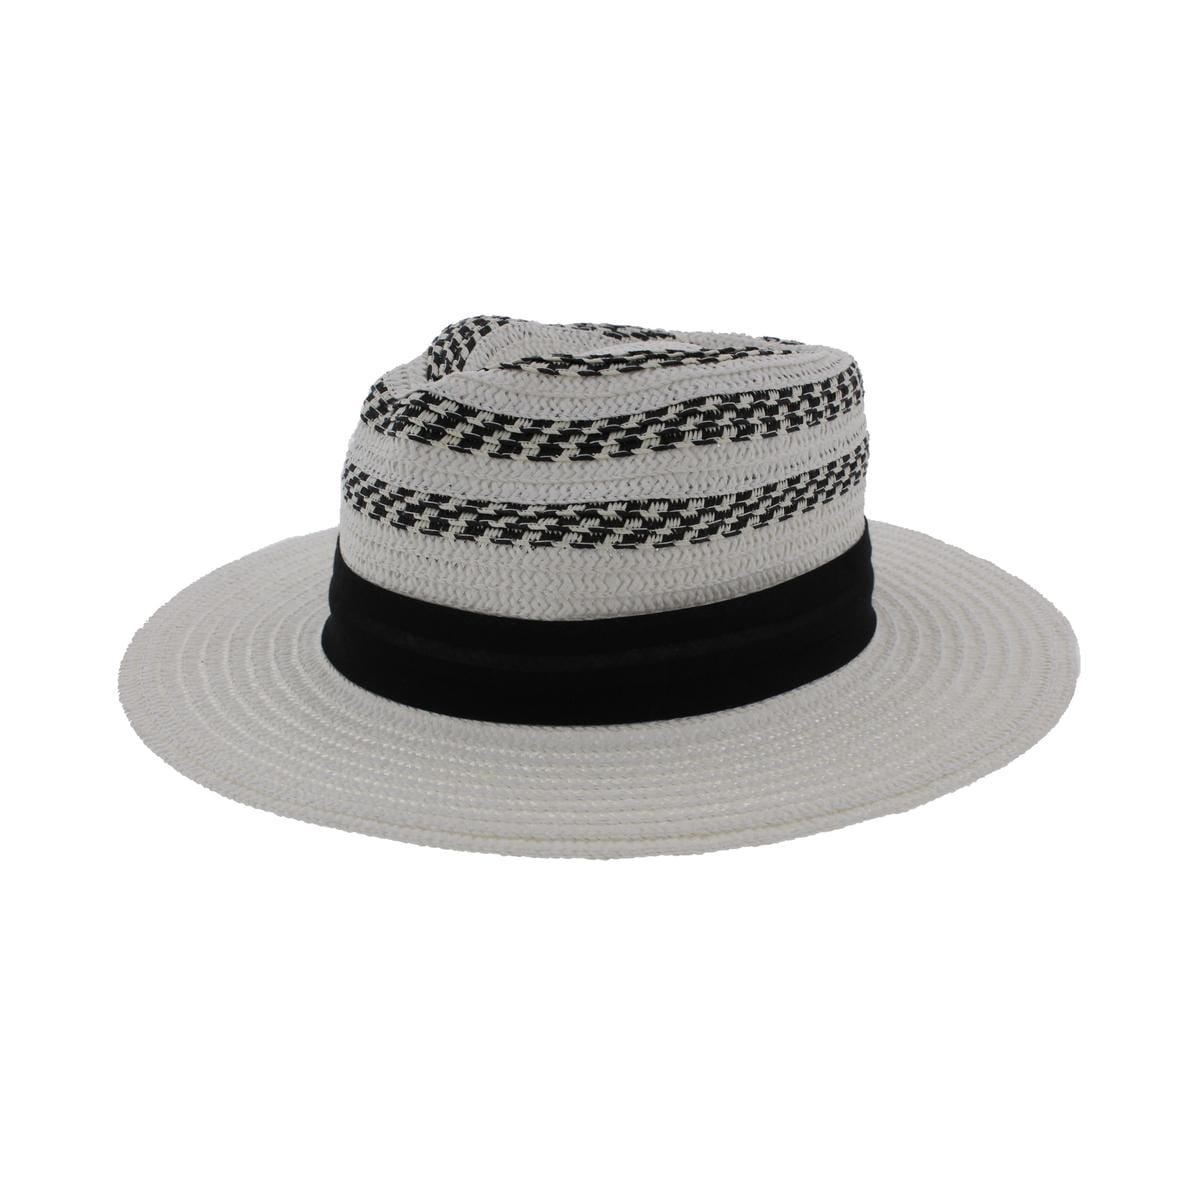 12c8d6bfeba Shop Vince Camuto Womens Straw Fedora Striped Adjustable - o s - Free  Shipping On Orders Over  45 - Overstock.com - 20517011